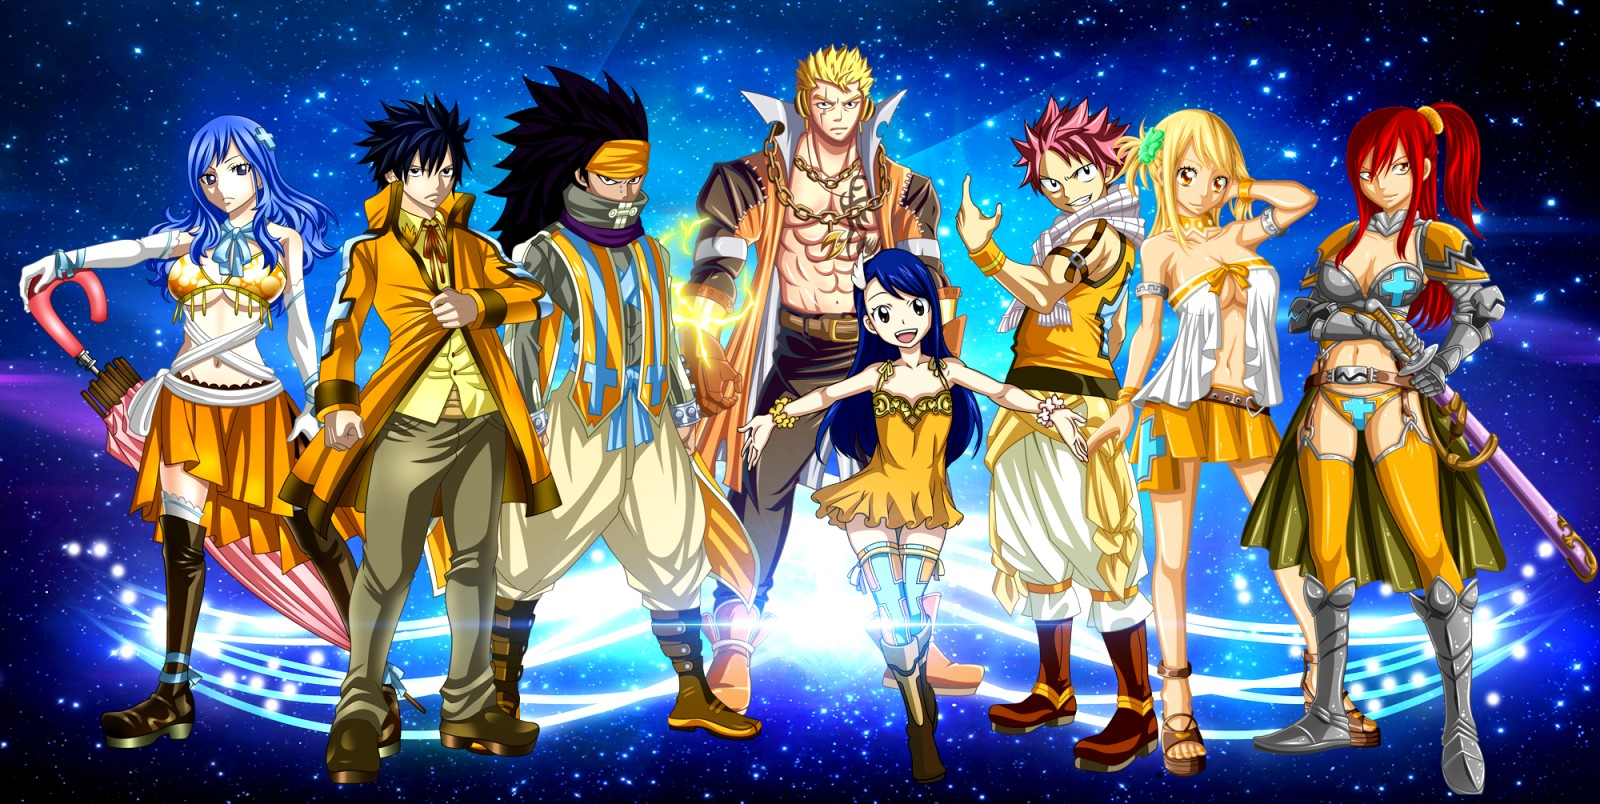 35 Fairy Tail